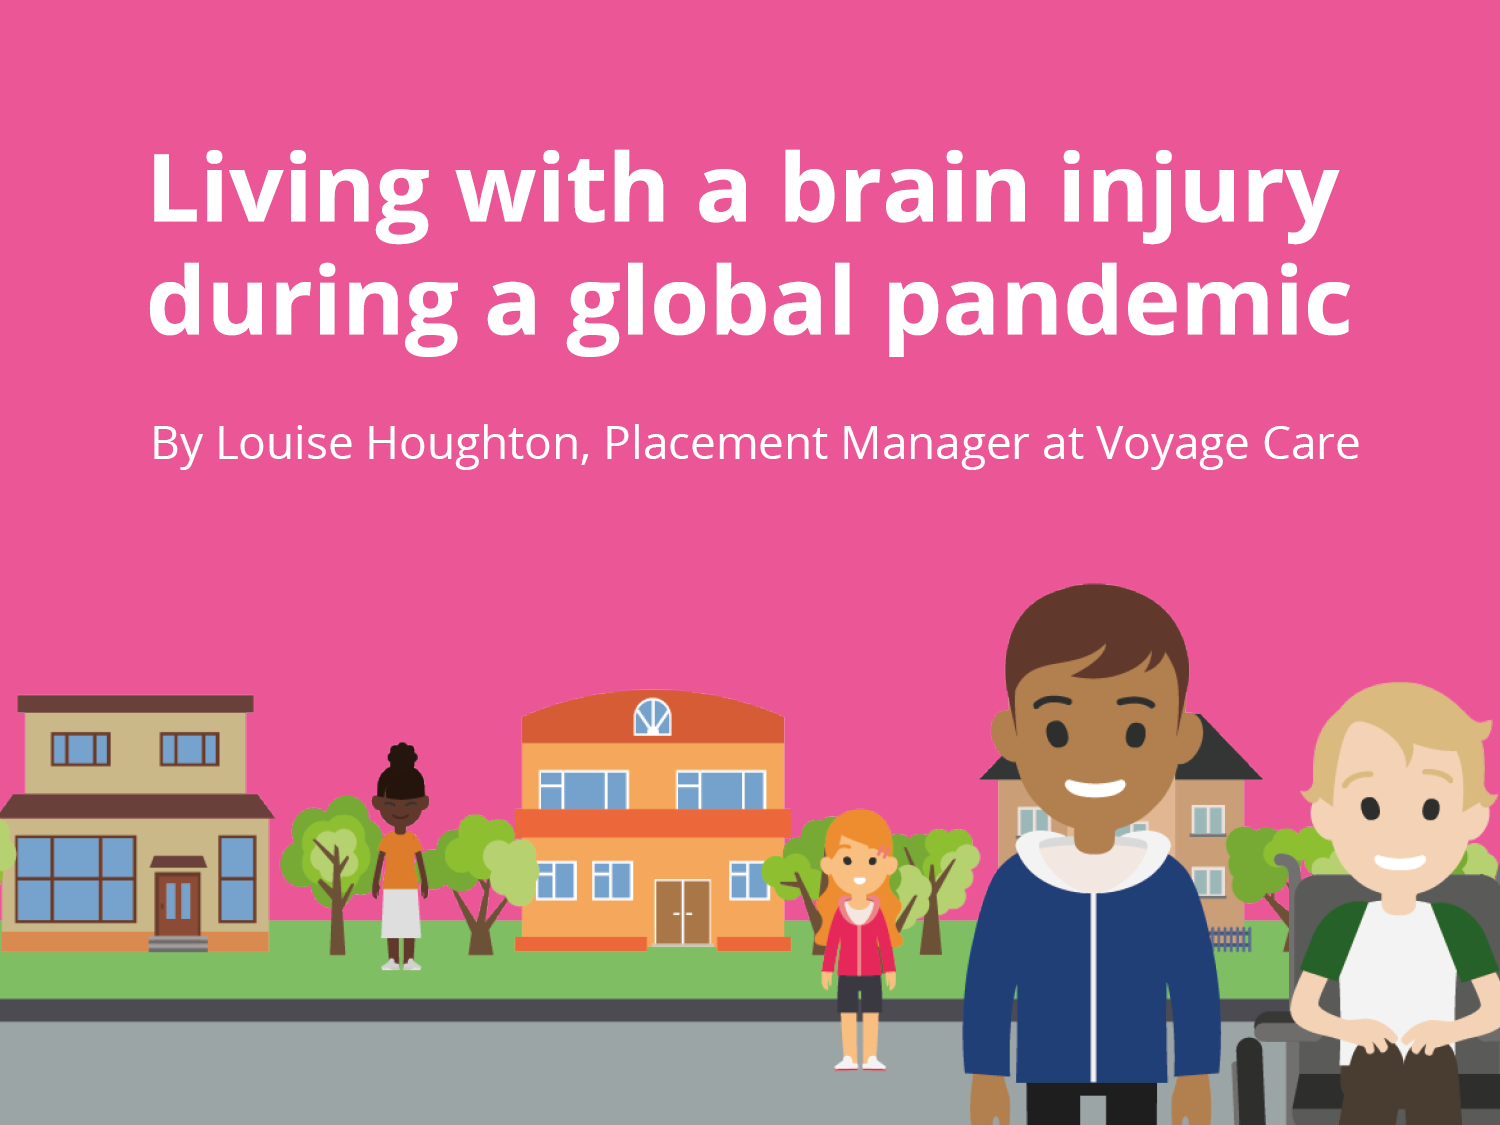 Living with a brain injury during a global pandemic